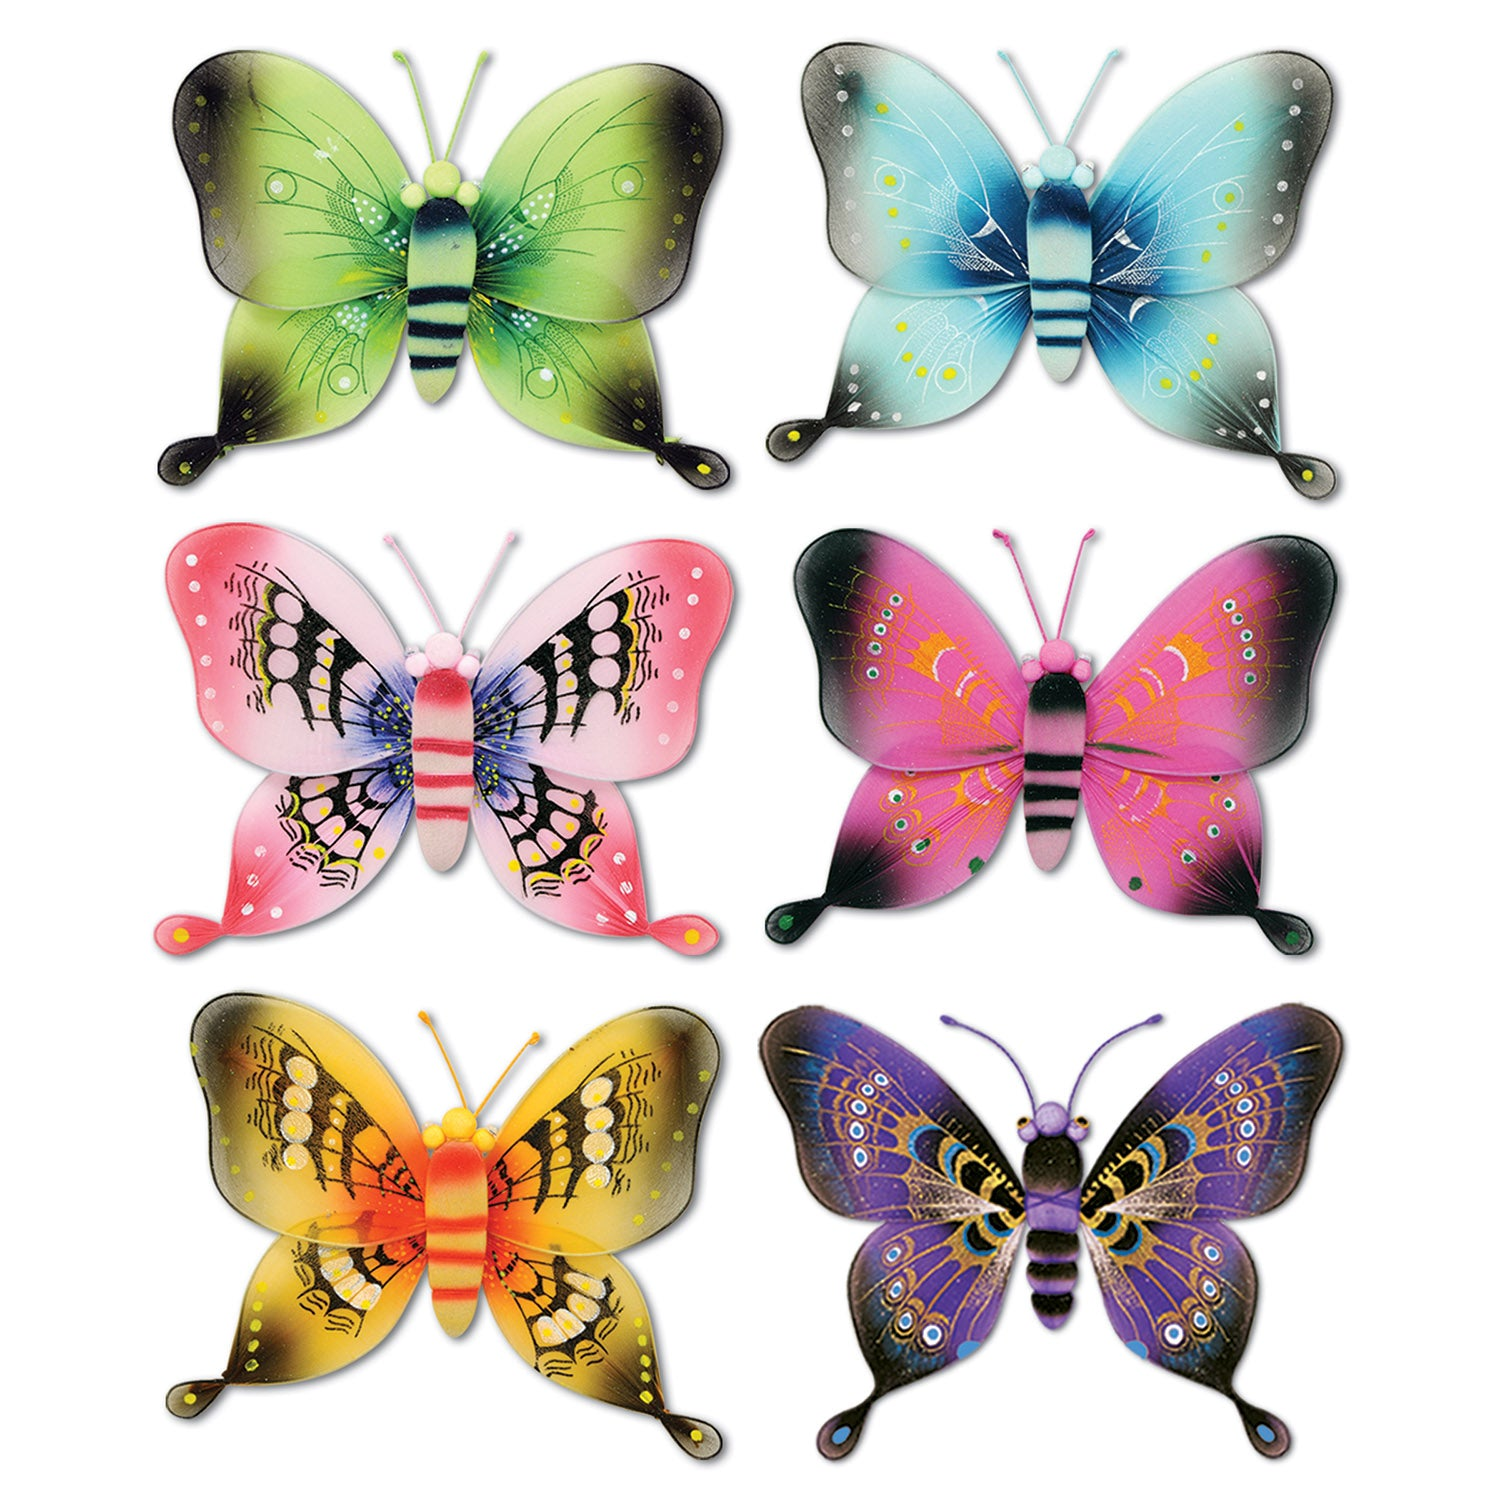 Jumbo Majestic Butterflies by Beistle - Spring/Summer Theme Decorations